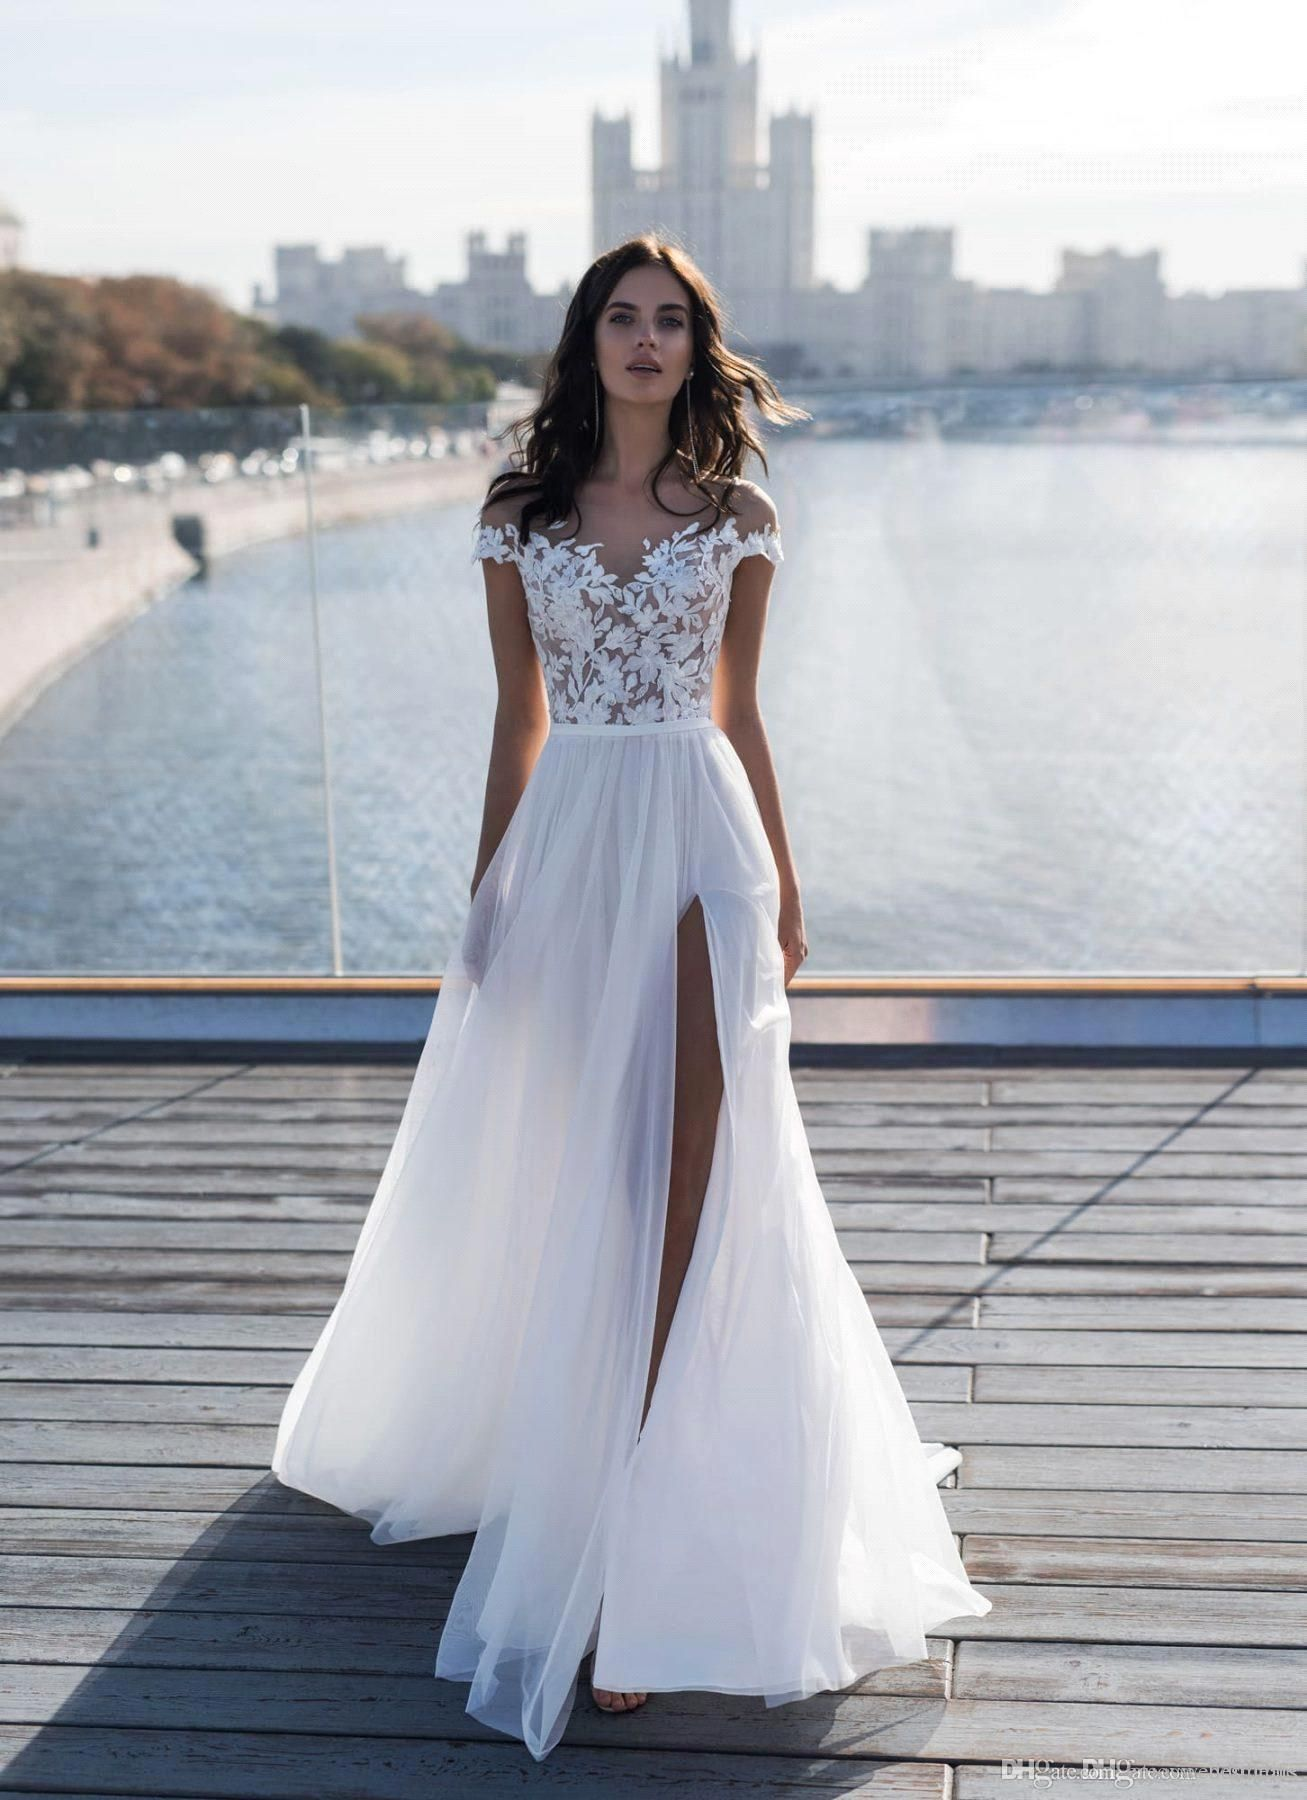 Discount2019 New Capped Sleeves Lace Top Wedding Dresses Sheer Neck A Line Chiffon Summer Beach Side Split Wedding Gowns From Enjoyweddinglife 125 97 Dhgate Lace Top Wedding Dress Lace Top Wedding [ 1800 x 1307 Pixel ]